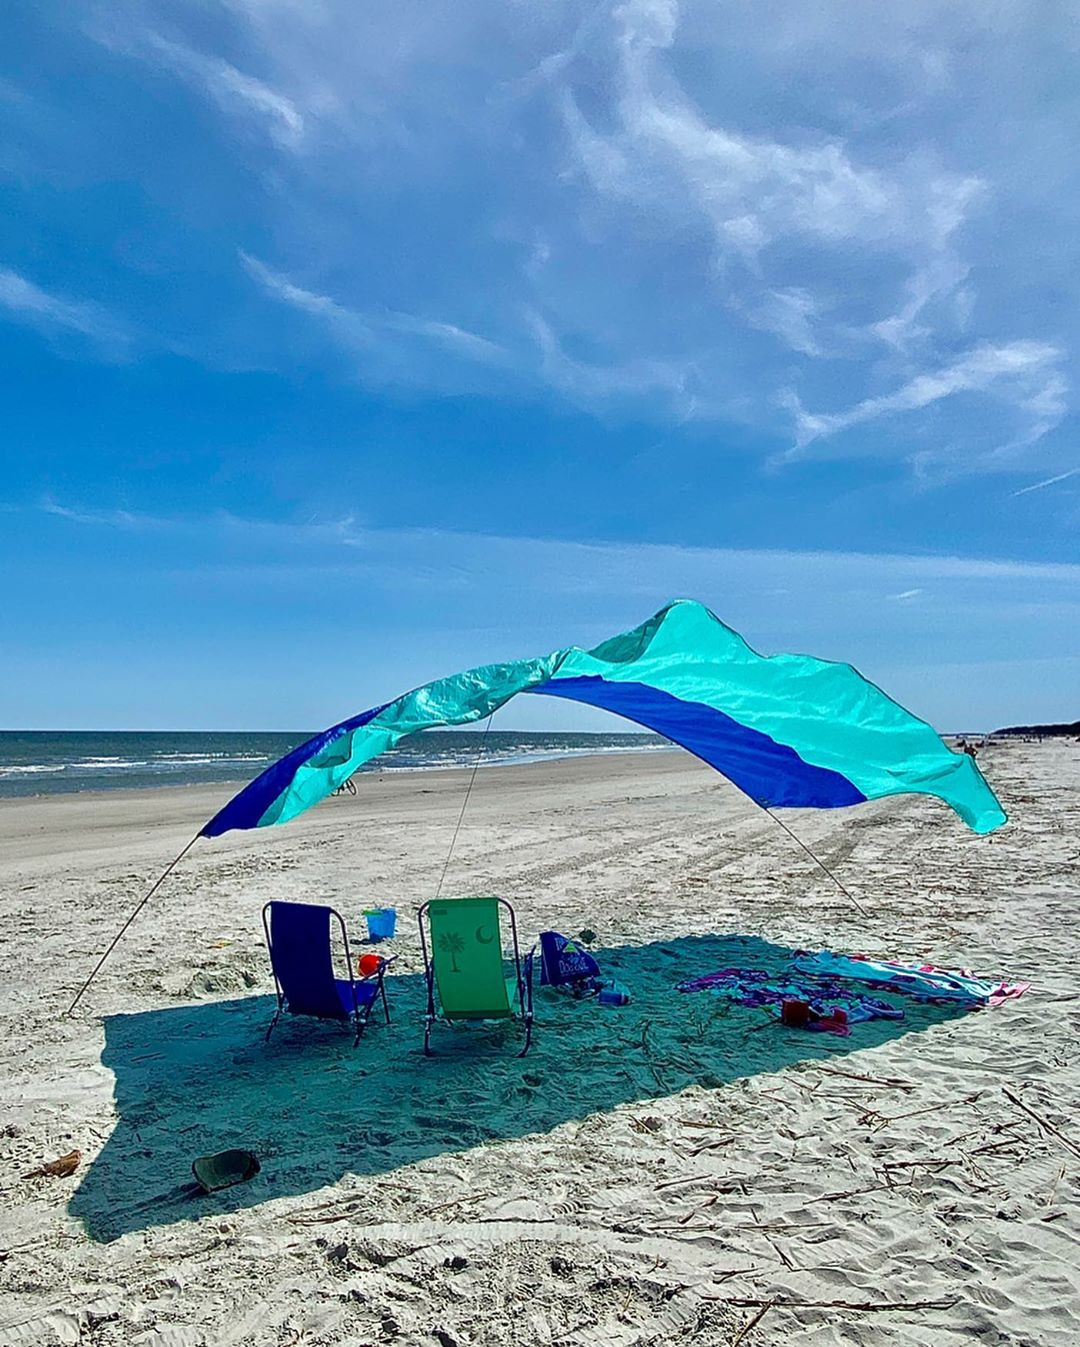 Beach chairs and canopy on beach